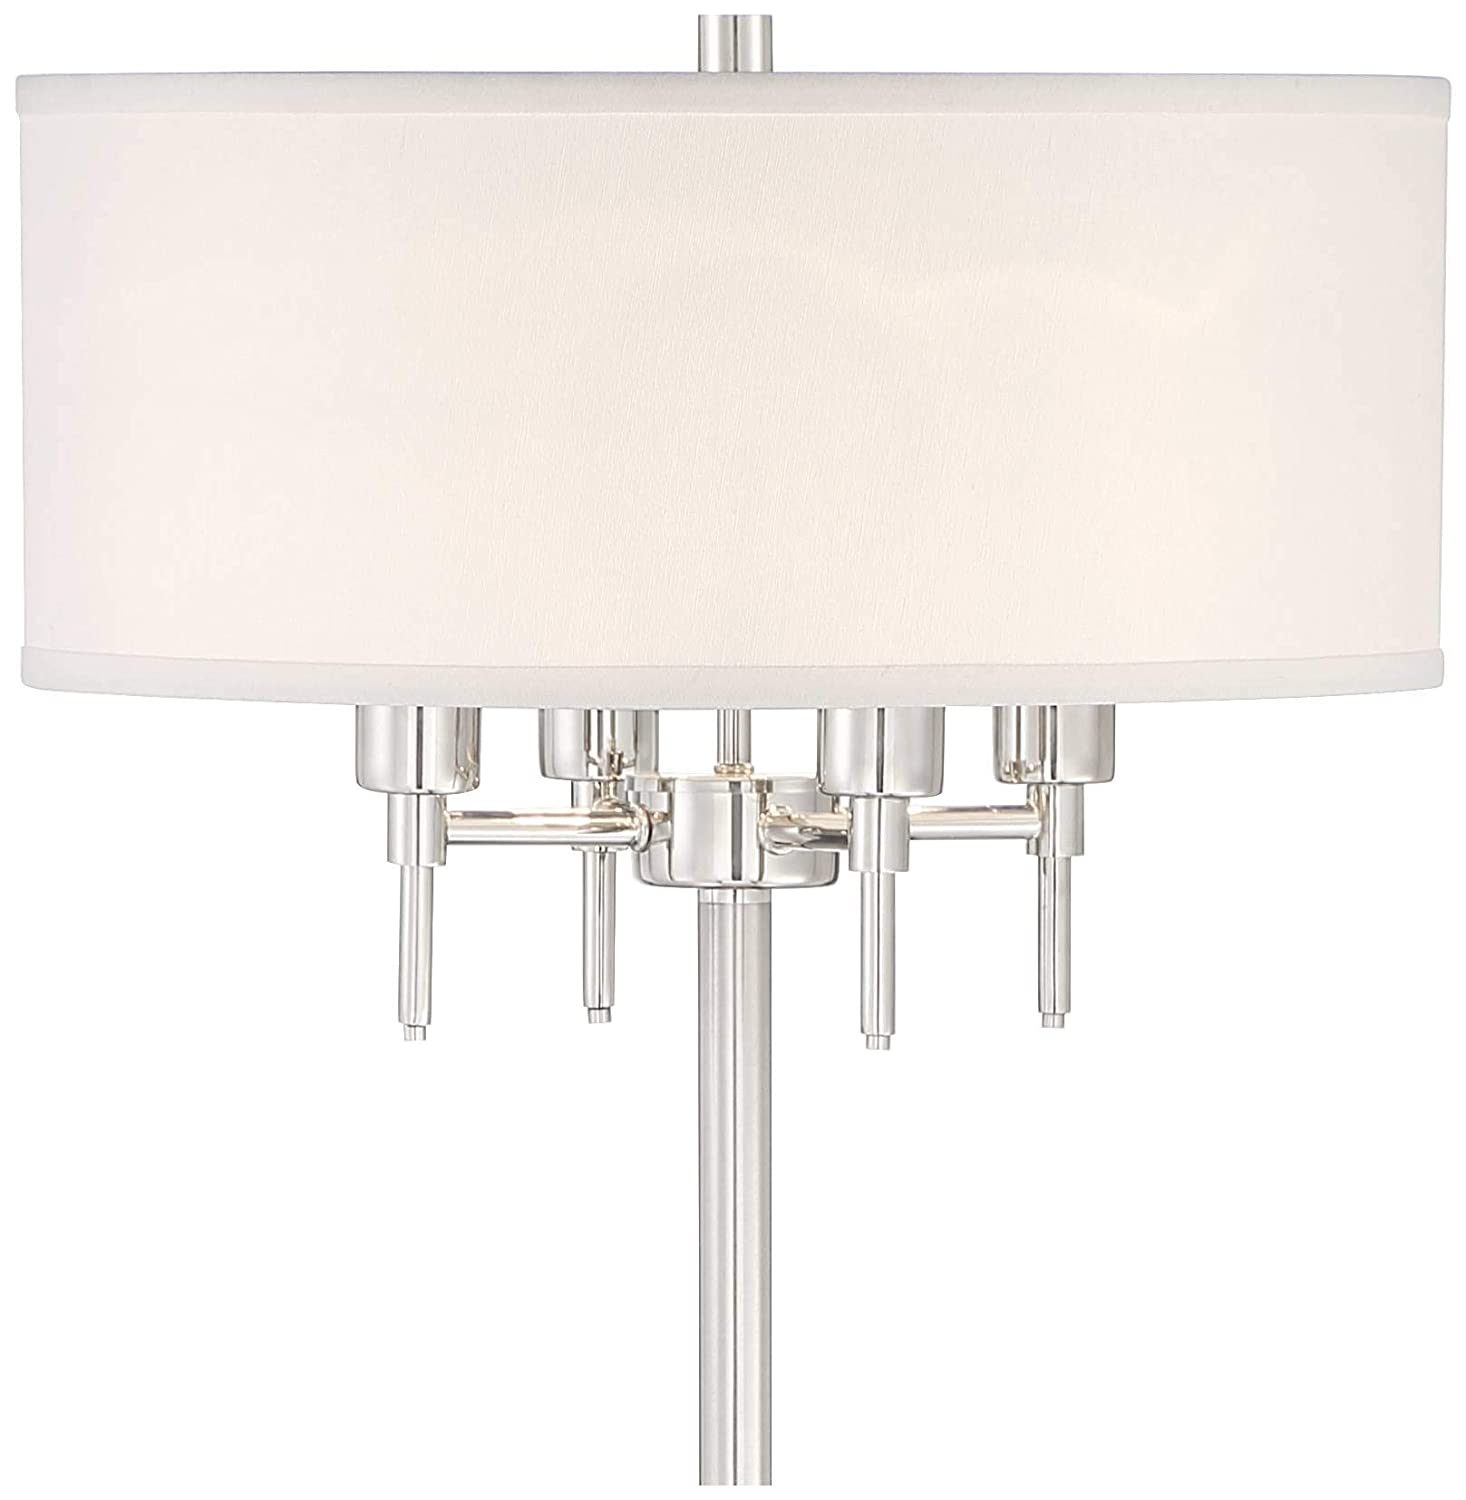 Amazon.com: Possini Hartford - Lámpara de pie (4 luces ...